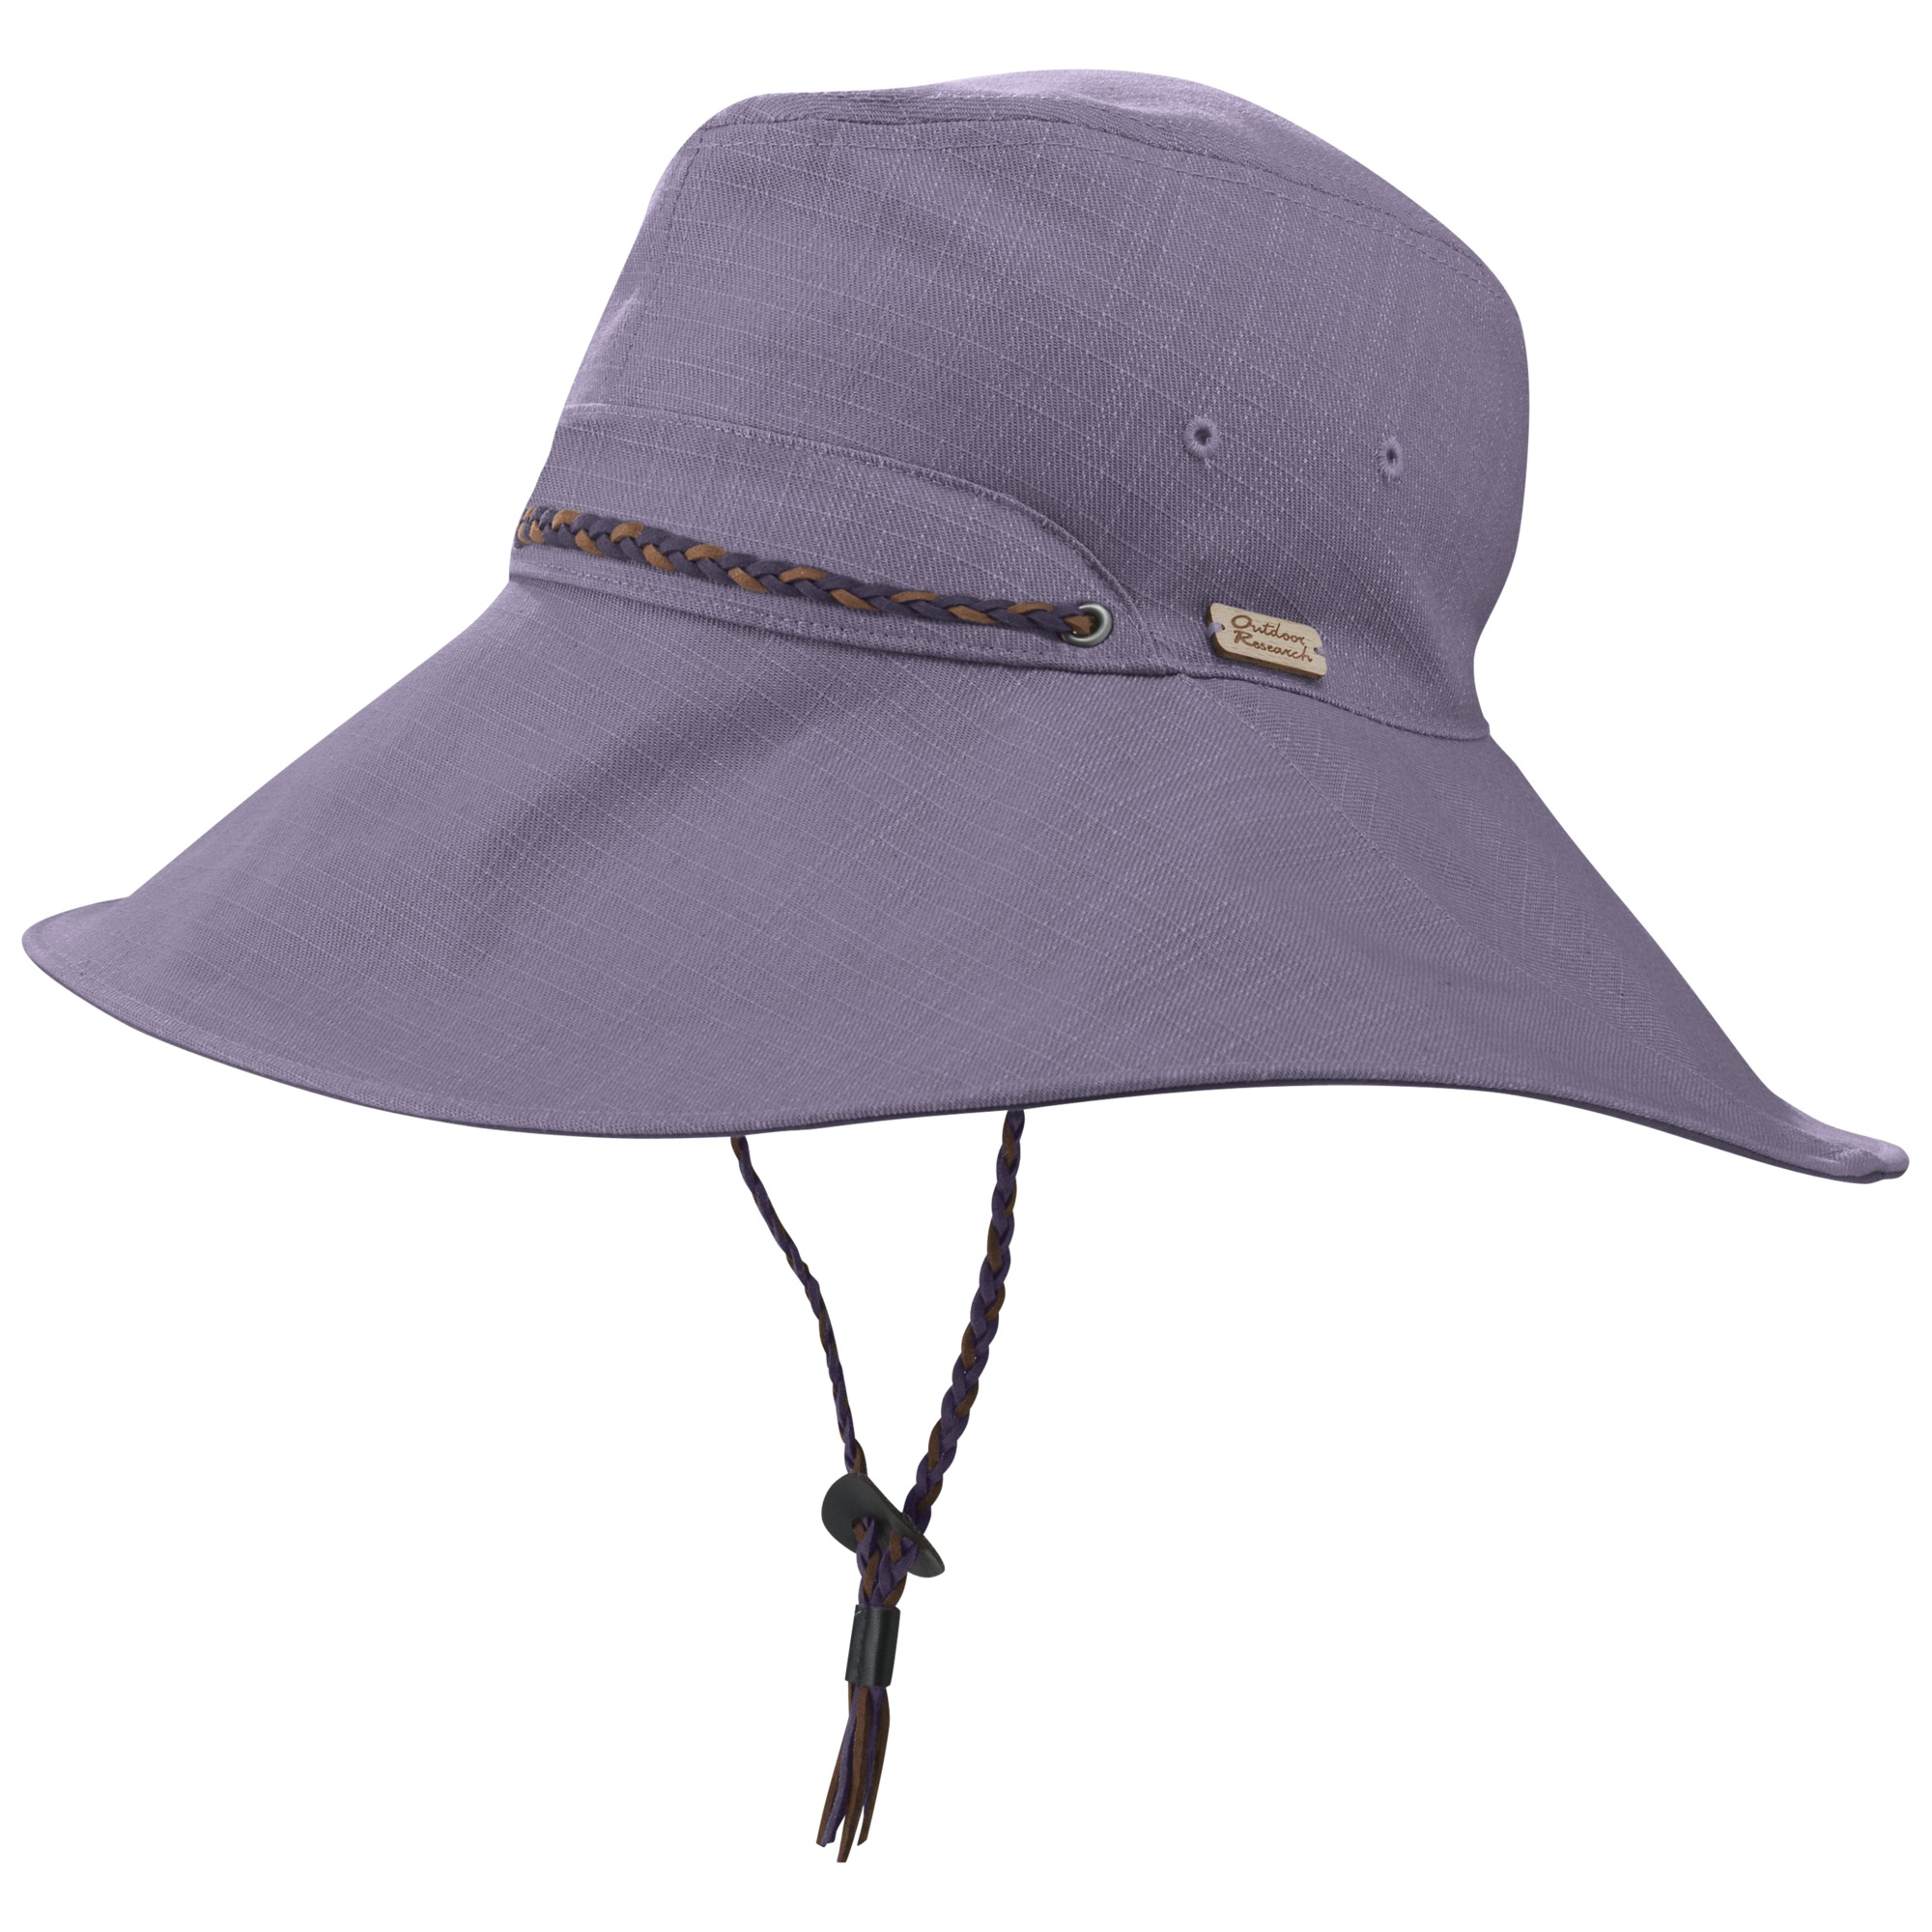 3b3d8b6fa1cbfb Women's Mojave Sun Hat - fig | Outdoor Research